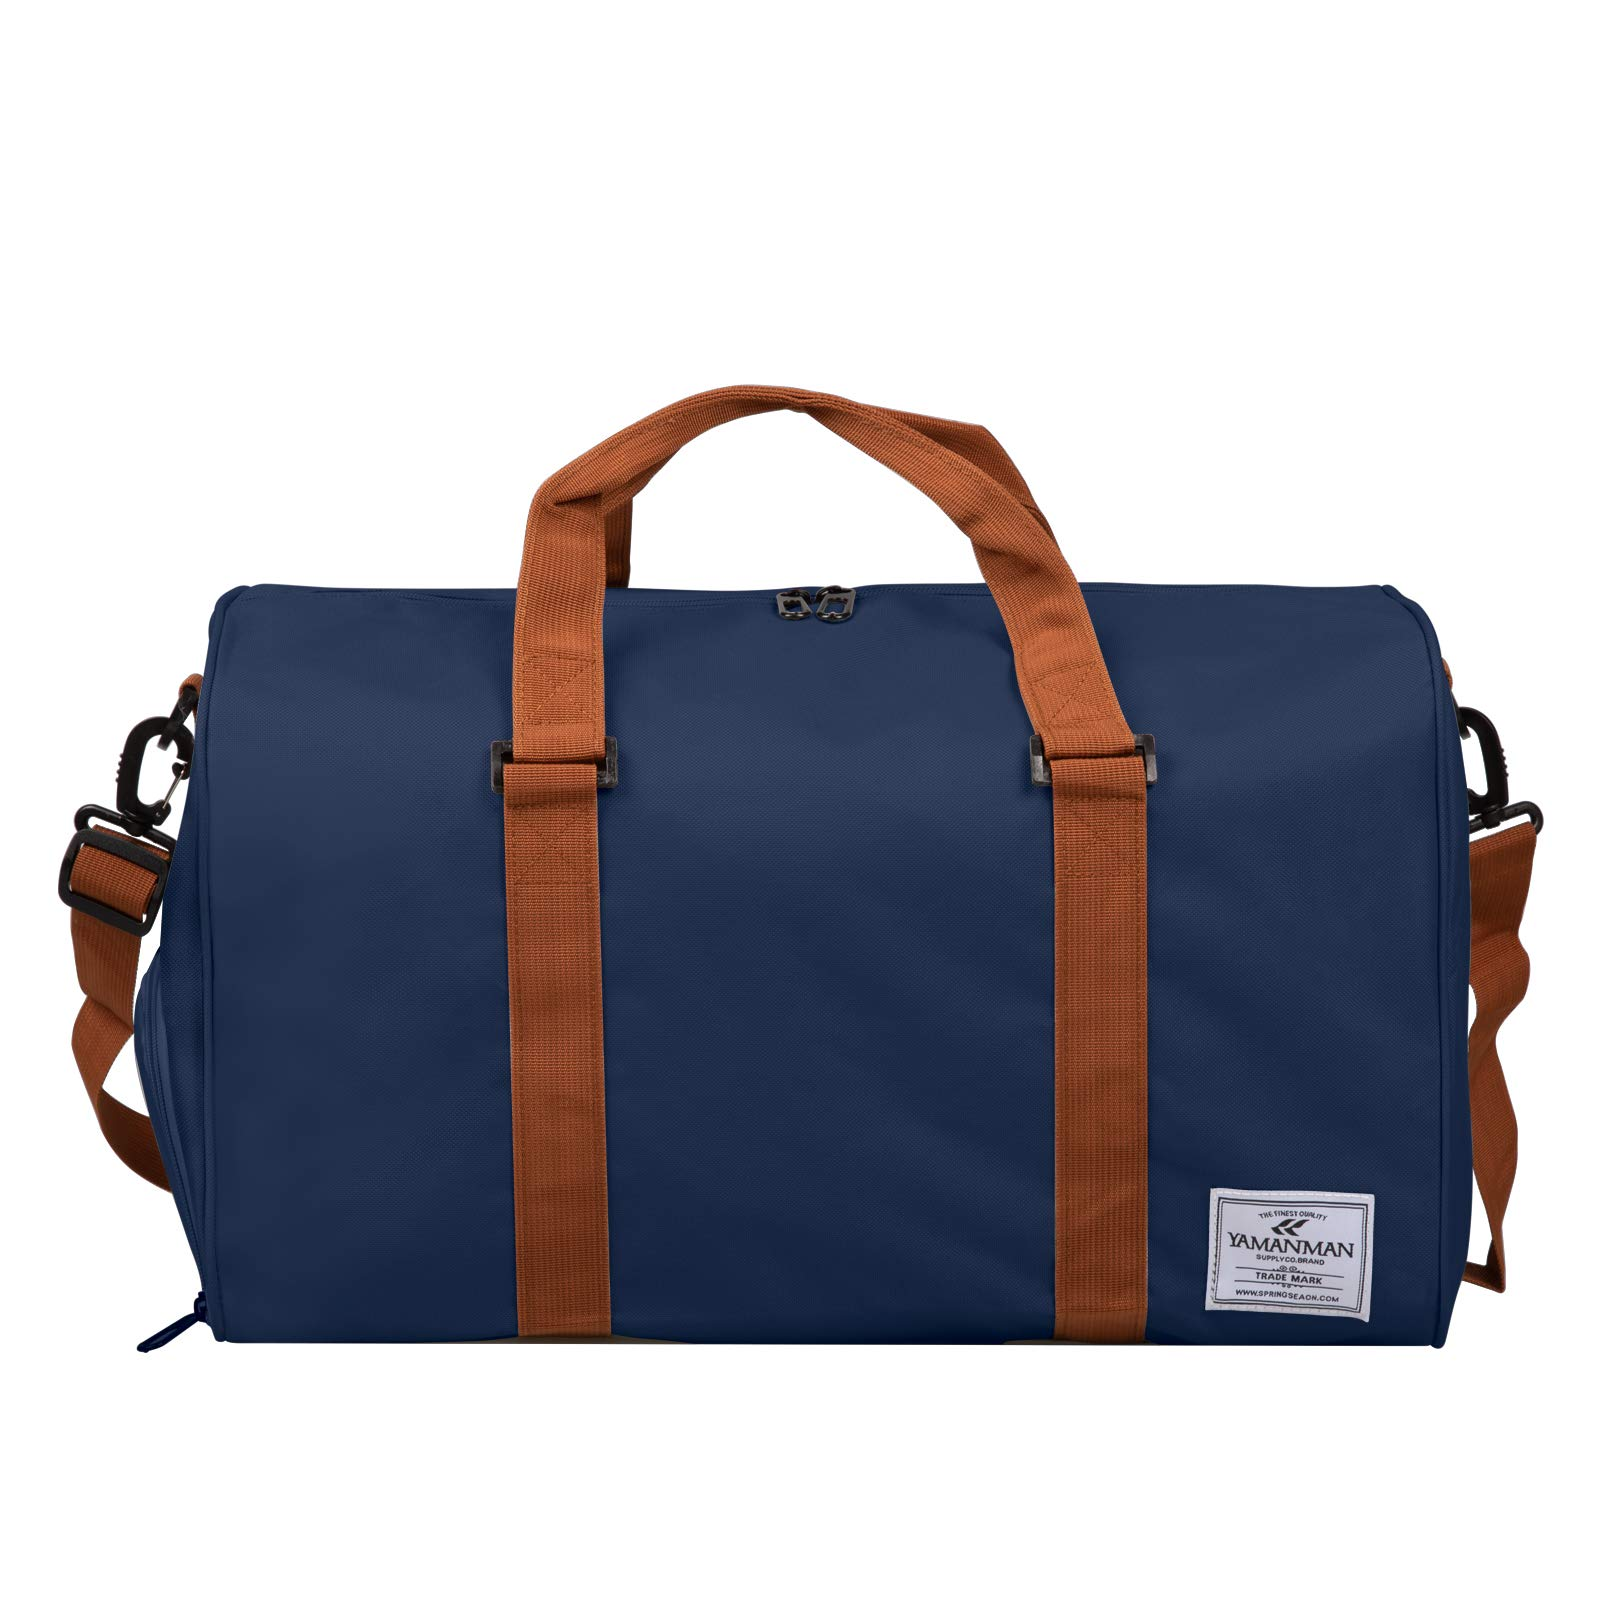 Travel Duffel Bag Large Capacity With Shoe Compartment Packable Weekender Bag for Men Women Water-proof & Tear Resistant